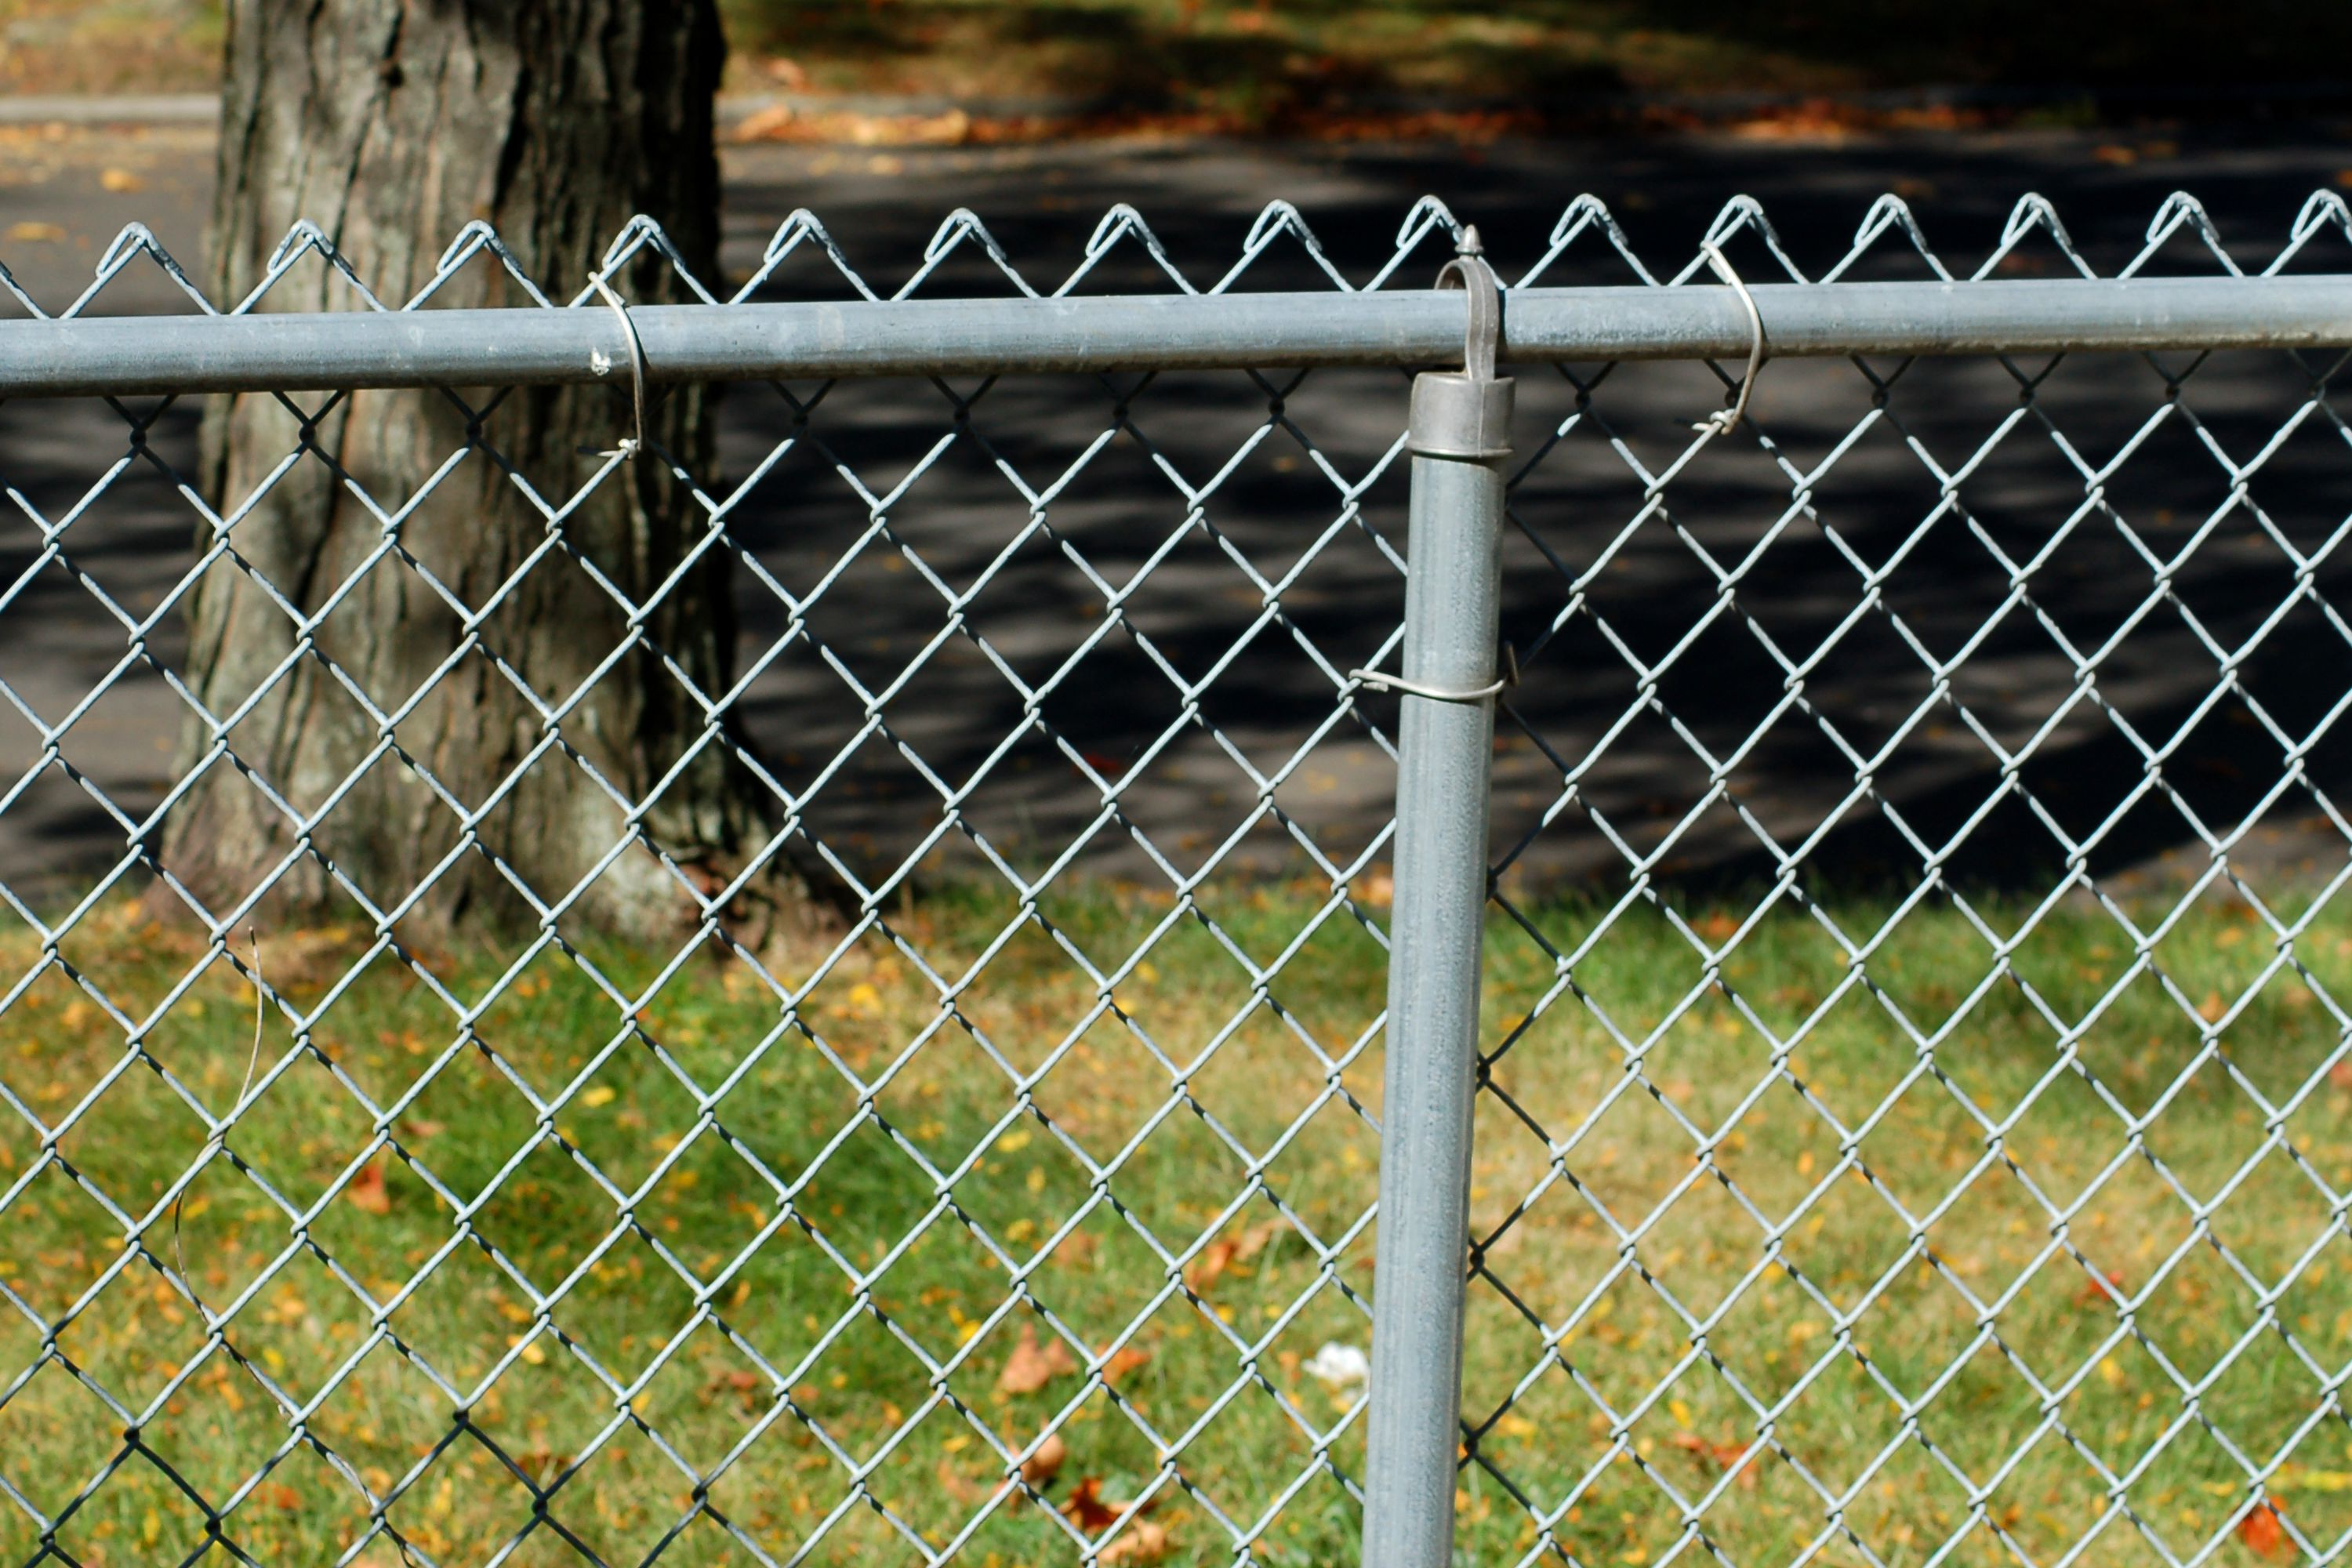 Why chain link fences make the best security fencing